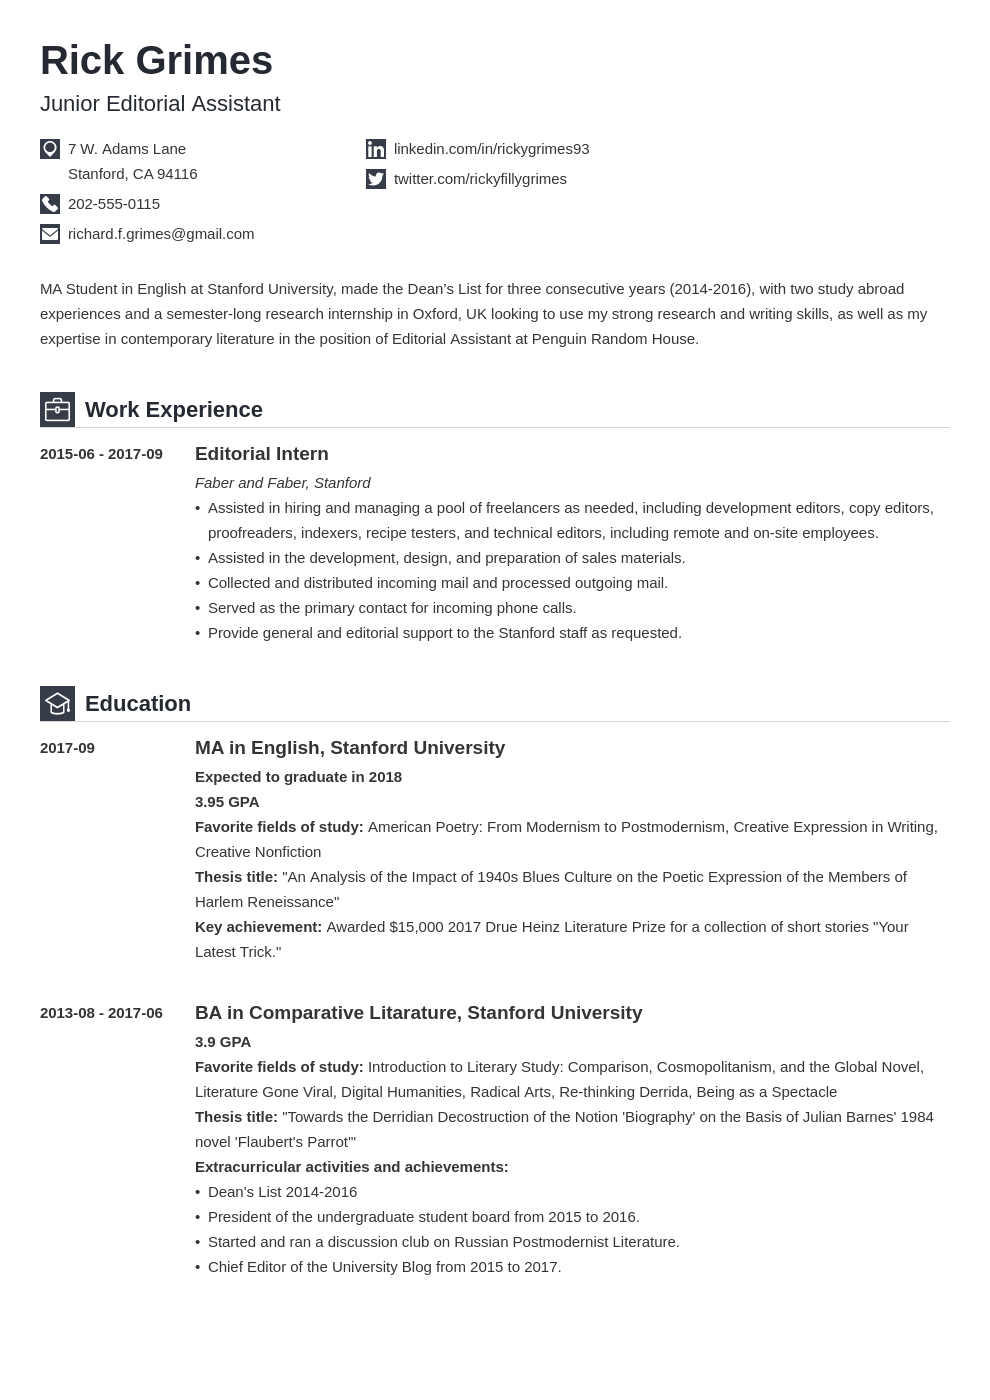 20+ Student Resume Examples (Template & Guide with Tips)